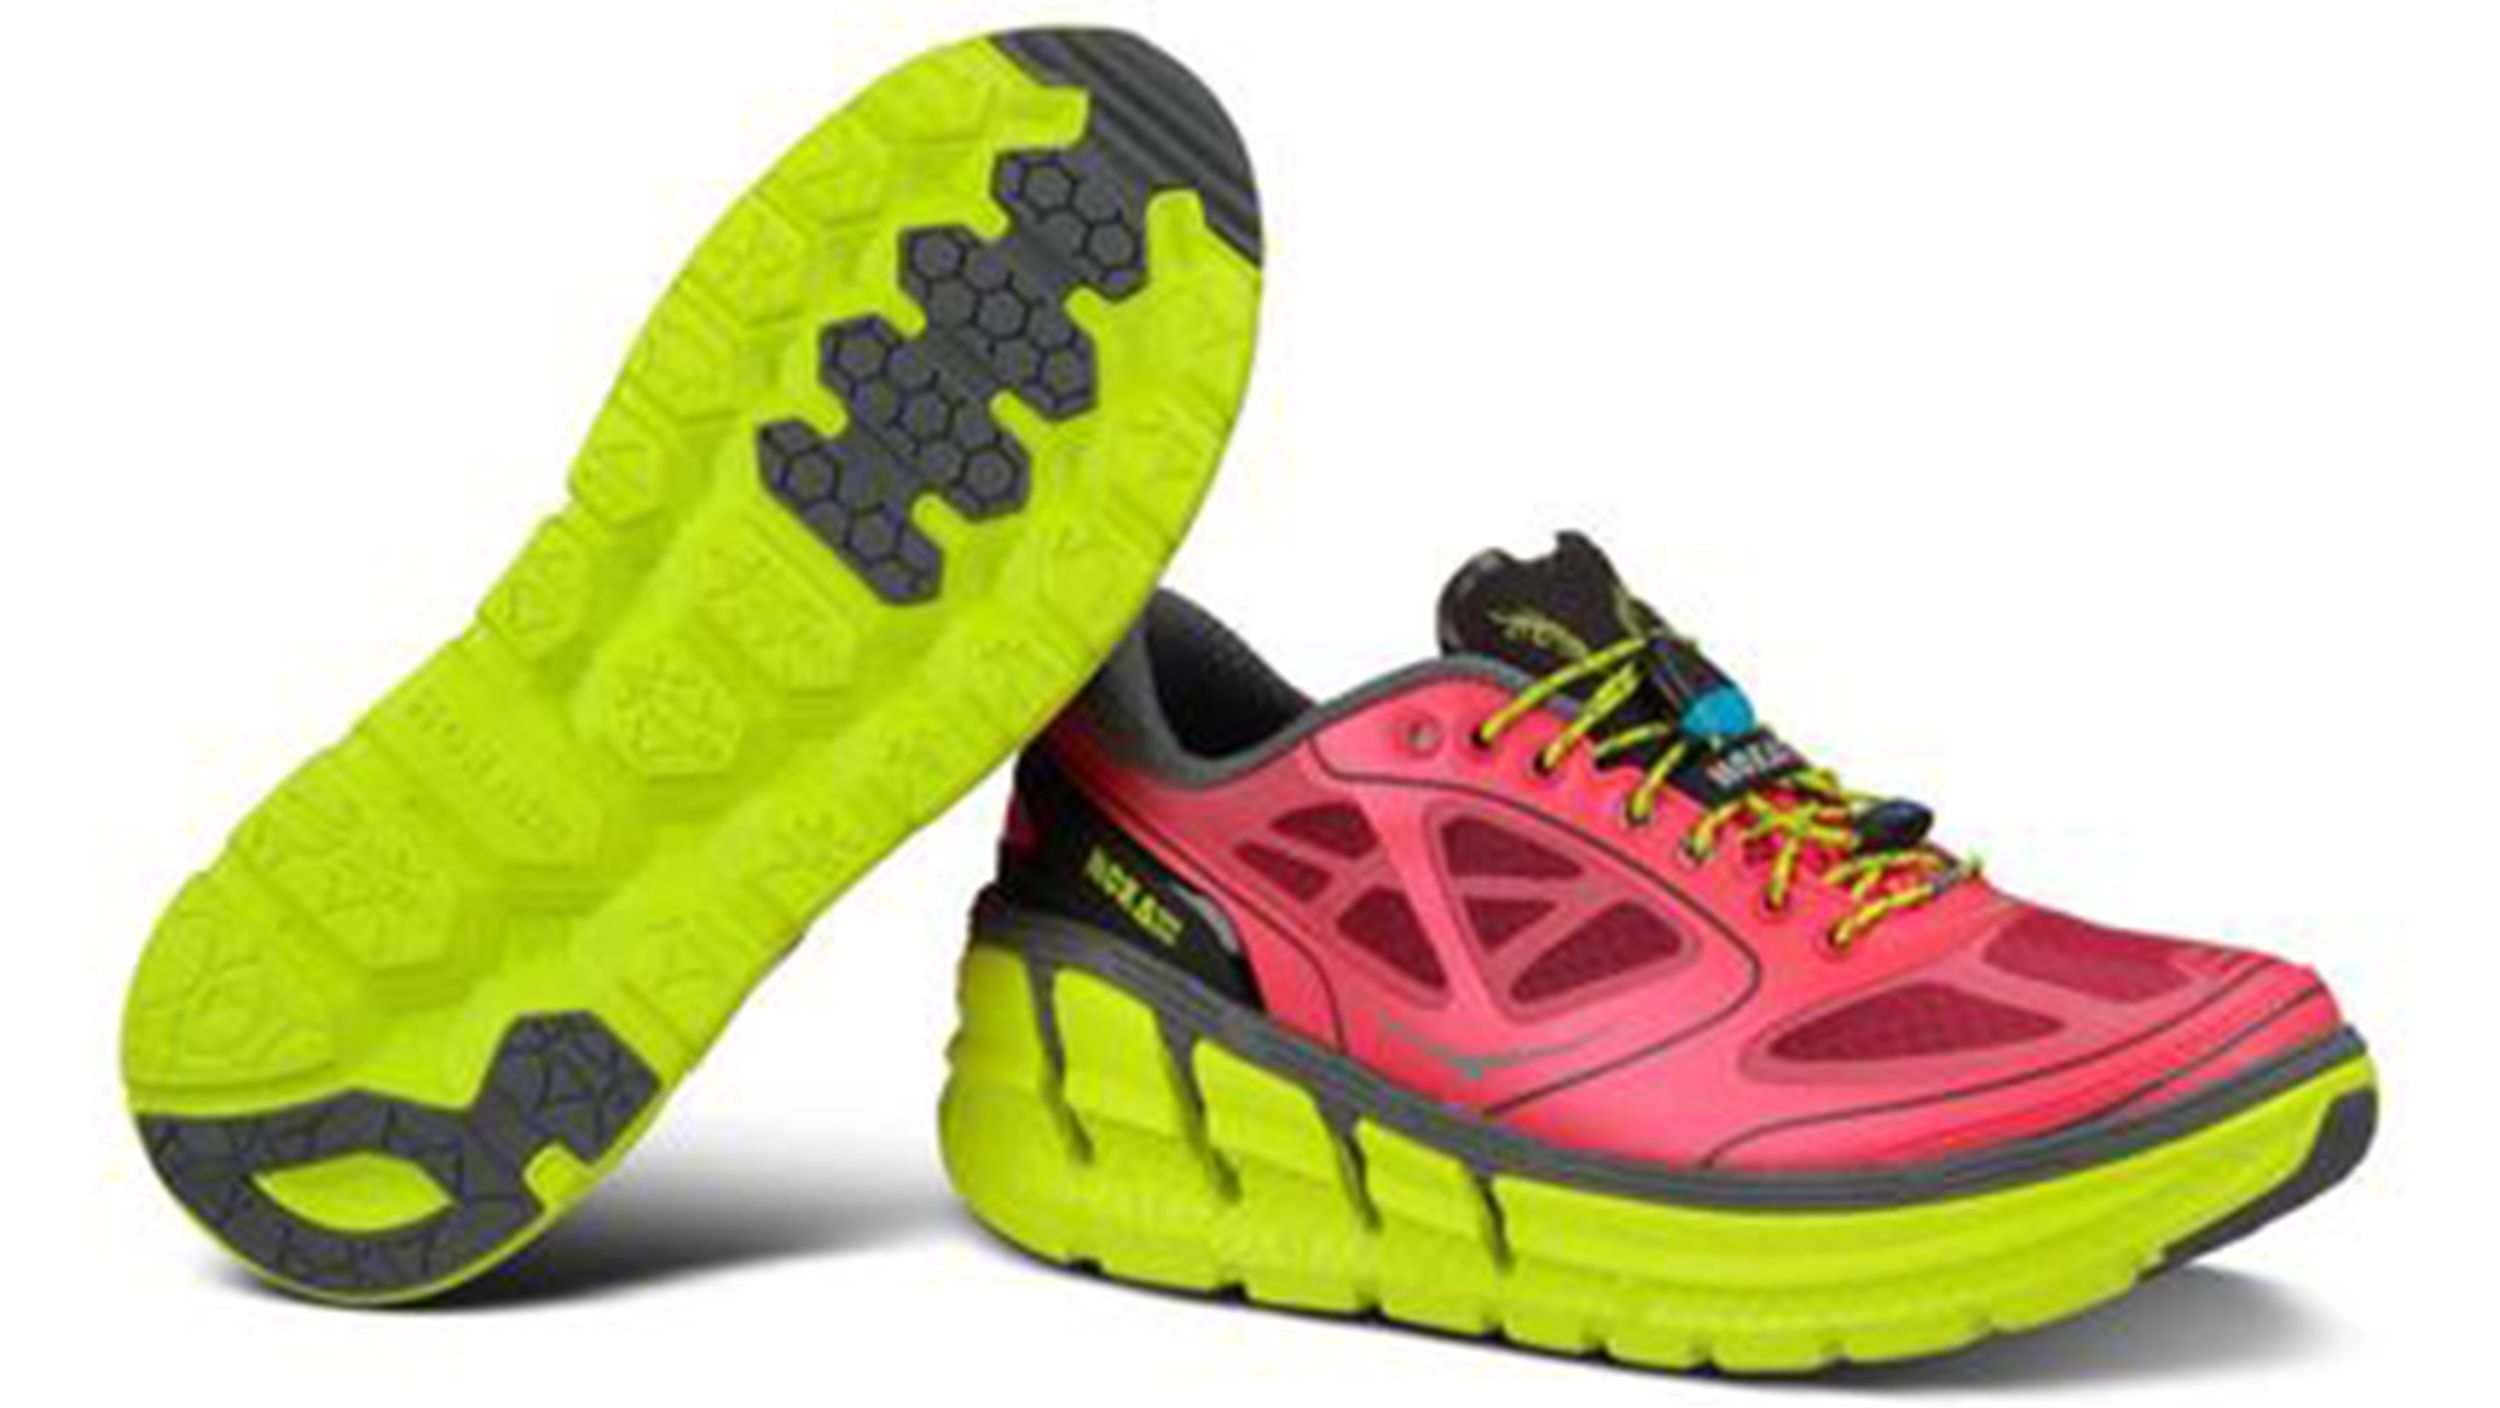 5d682632f96 Fat-soled shoes are the new barefoot runners  Can they protect aging  joints  (Photo  Hoka One One)